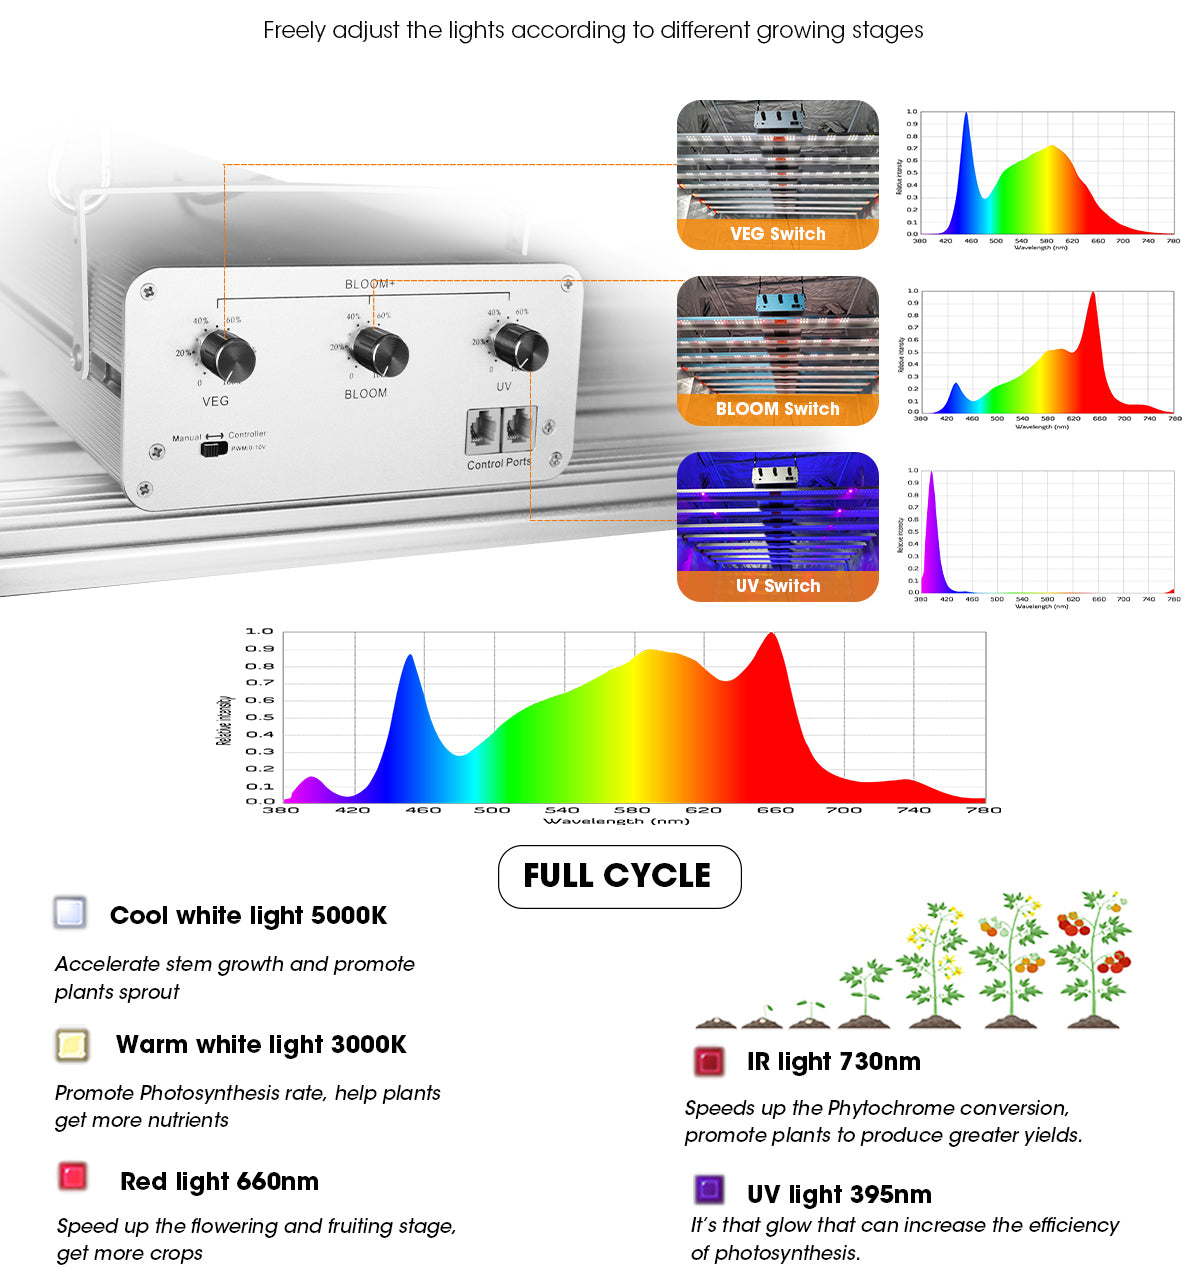 ParfactWorks-Independent Dimmable-LED-Grow-Bar-Ze250-3-Channels-with-VEG,-BLOOM-and-UV